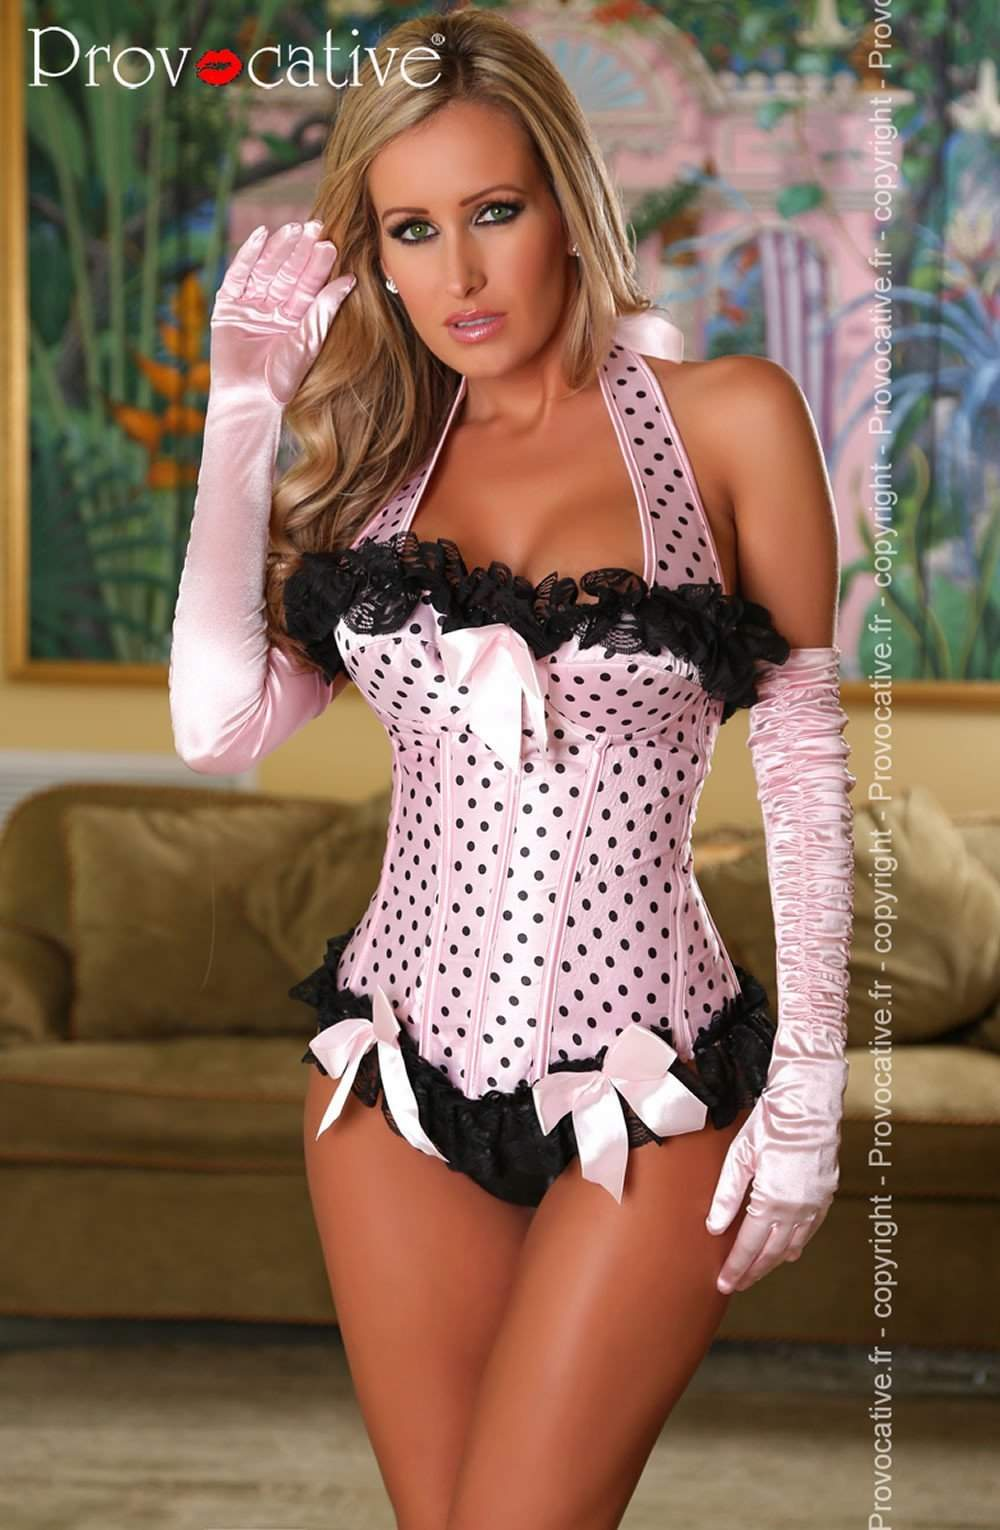 Magic Moments Corset by Provocative - Provocative - Katys Boutique Lingerie USA